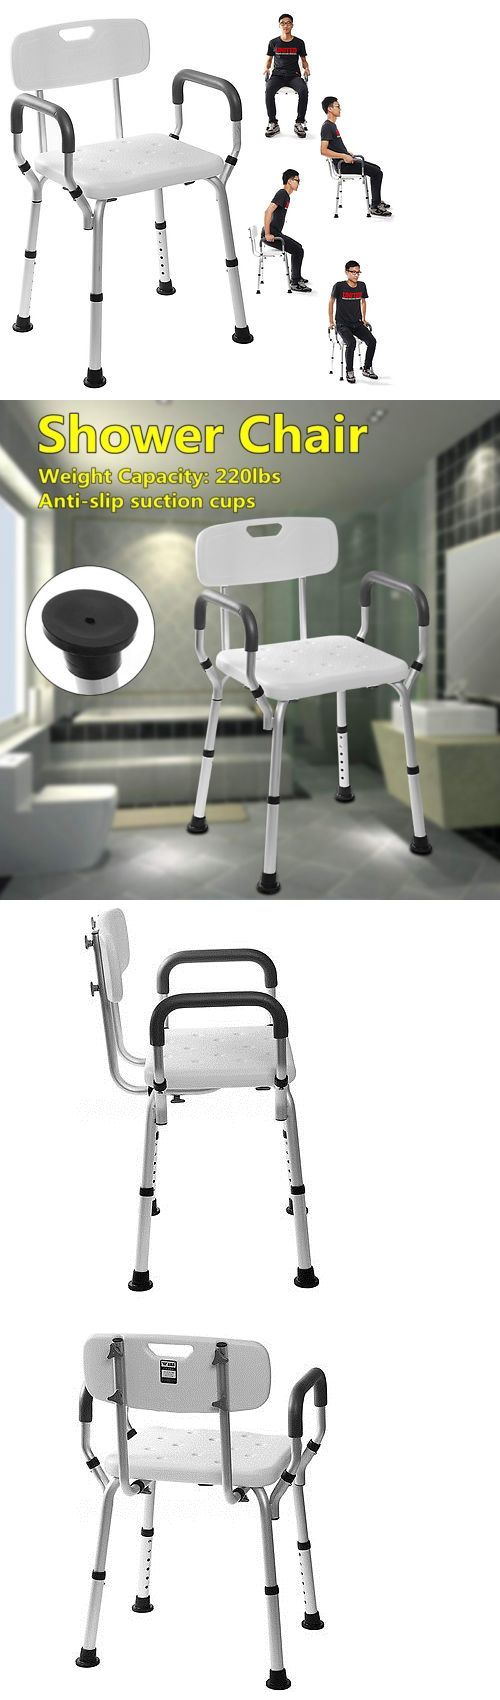 best 25 shower chair ideas on pinterest shower seat nautical shower and bath seats adjustable medical bathtub bath shower chair bench seat stool armrest back